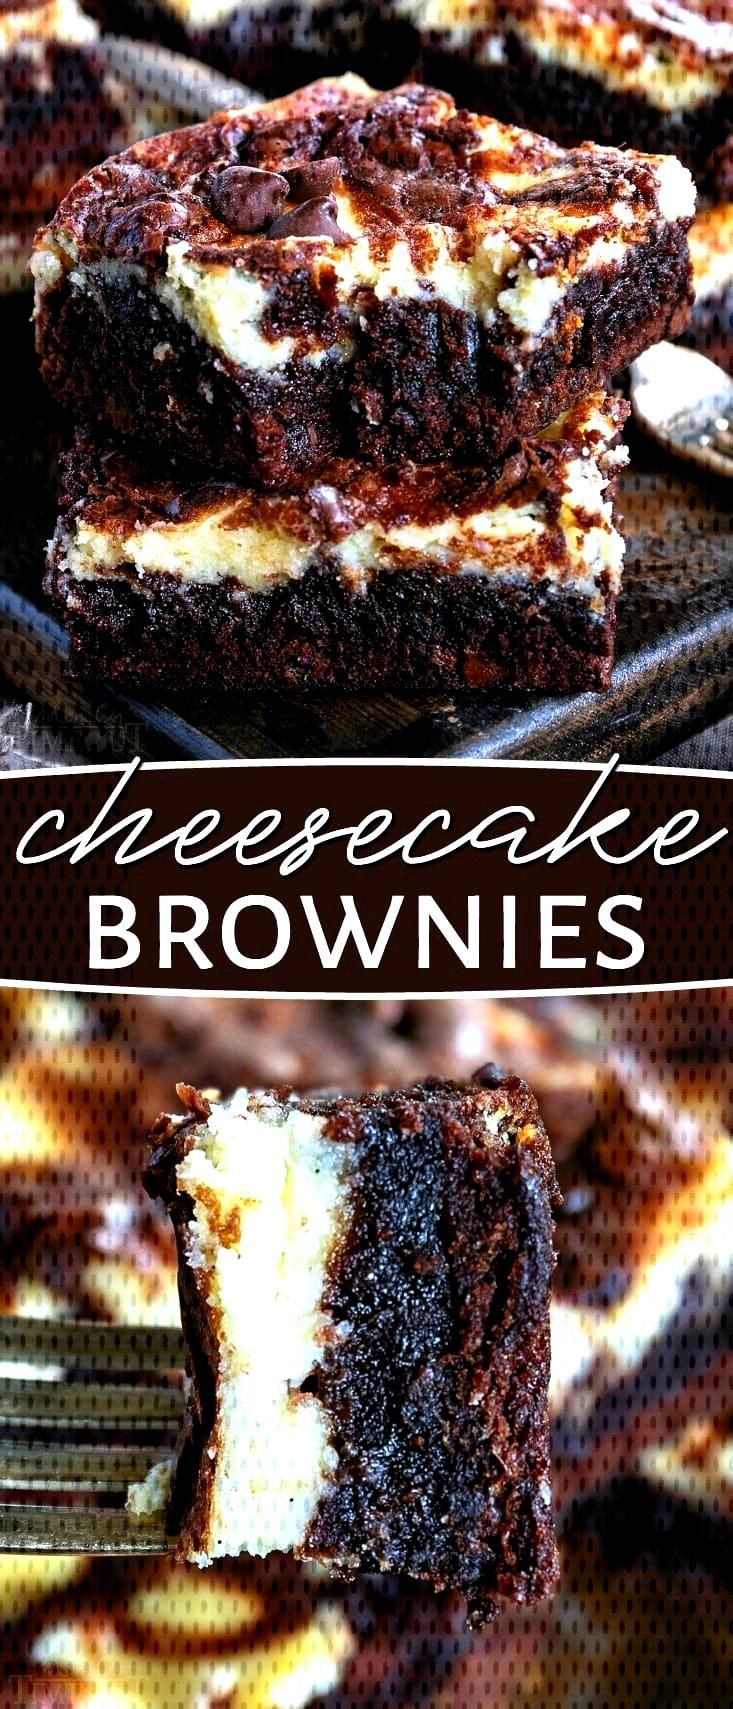 These Cheesecake Brownies are a mouth watering combination of two dessert favorites. Extra fudgy br